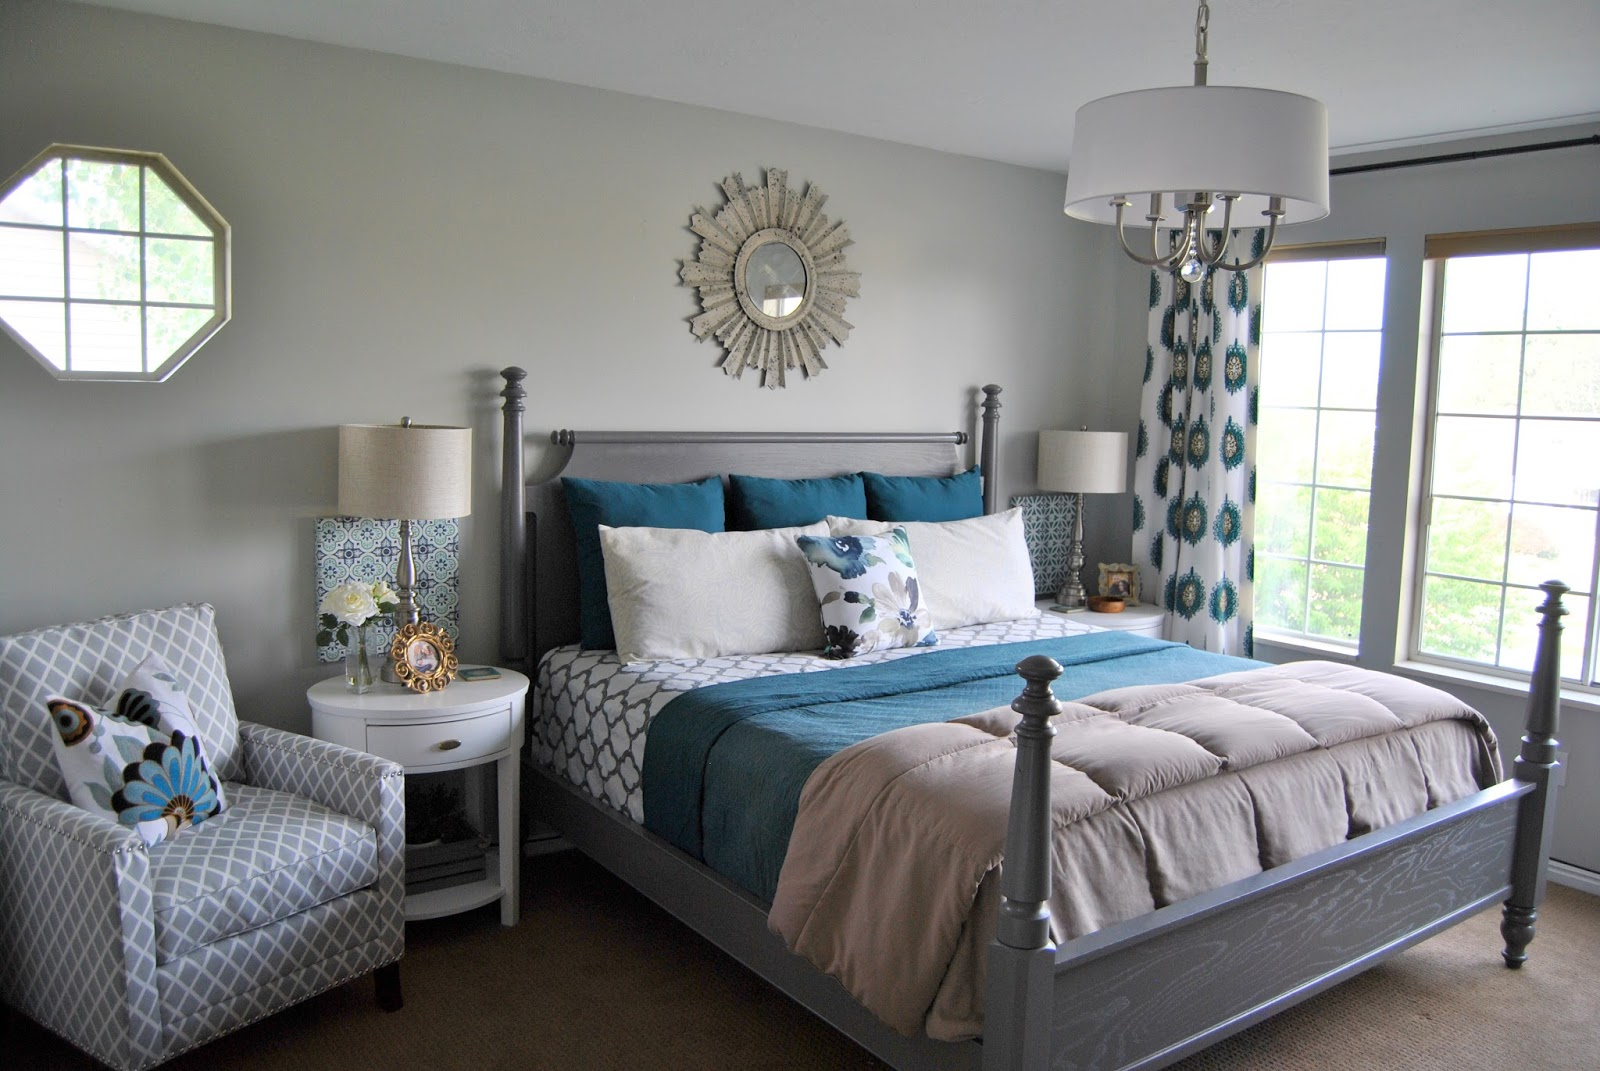 Studio 7 Interior Design: Shop This Room: Master Bedroom